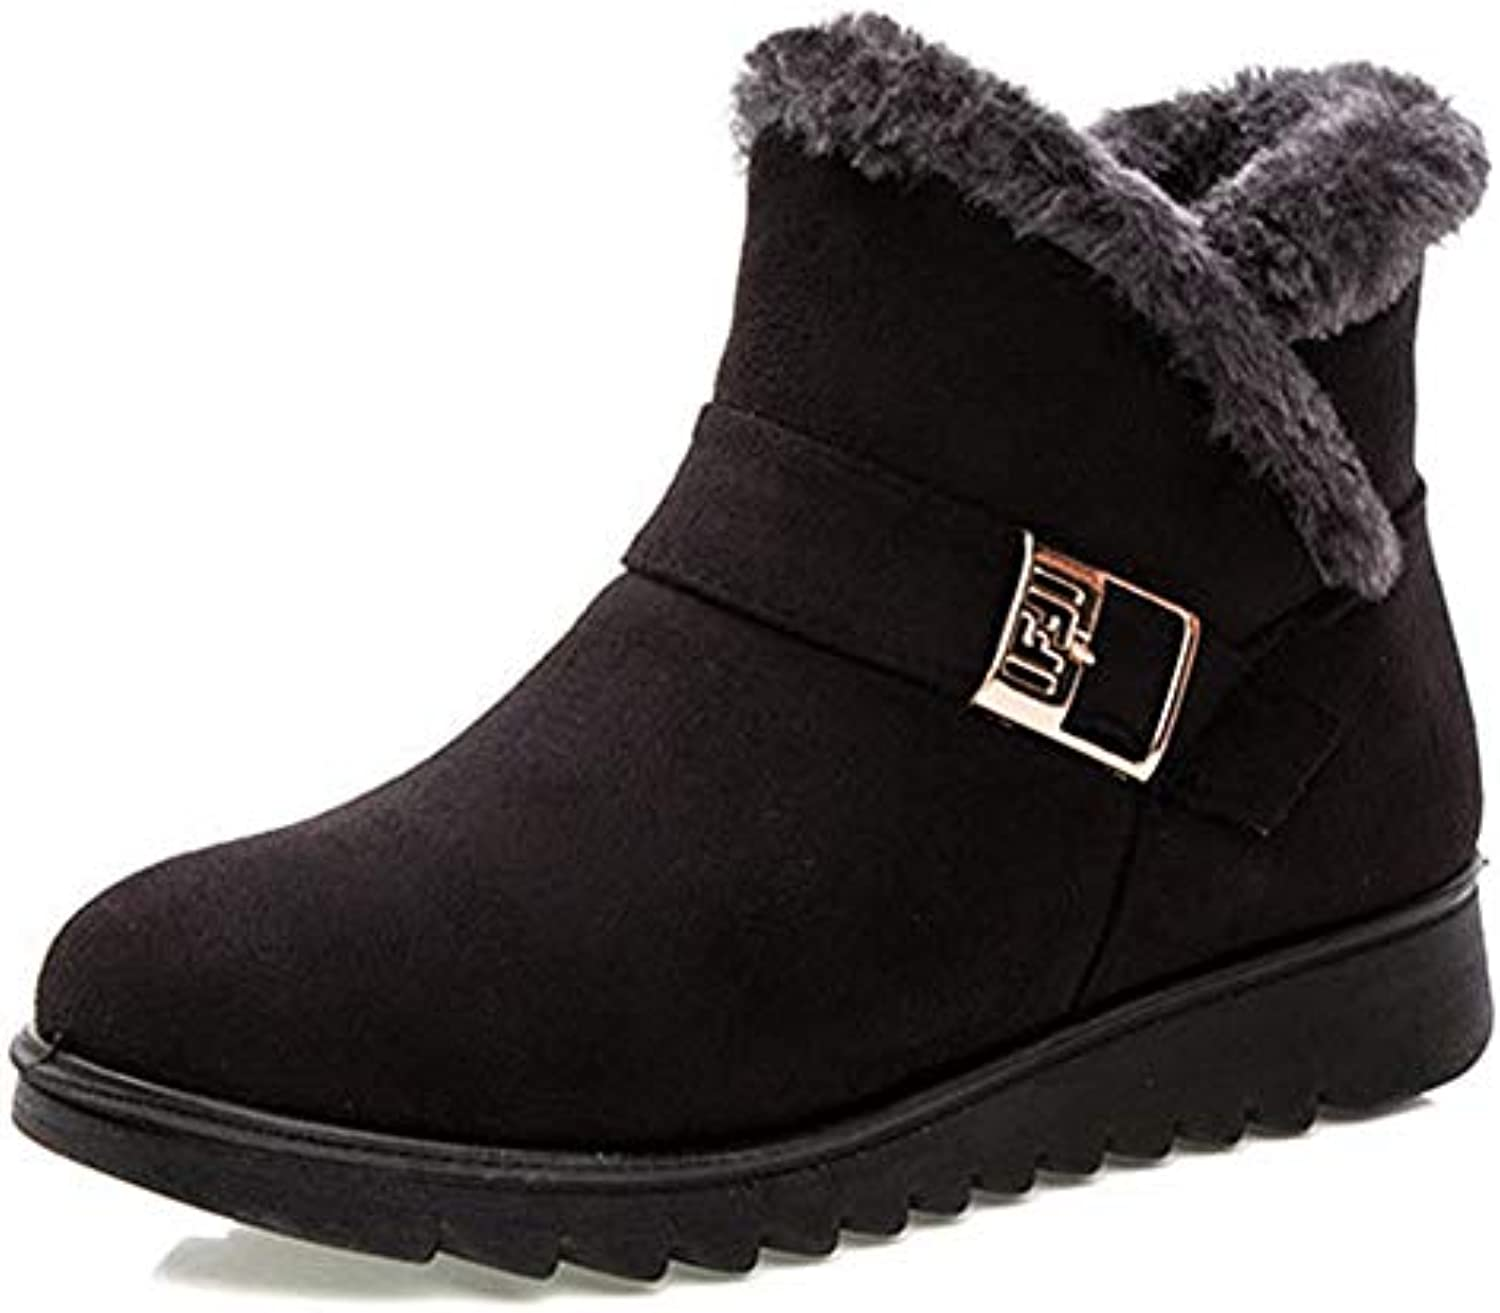 T-JULY Women Fashion Warm Snow Boots Ankle Winter Boots for Women Black Red Plus Size shoes